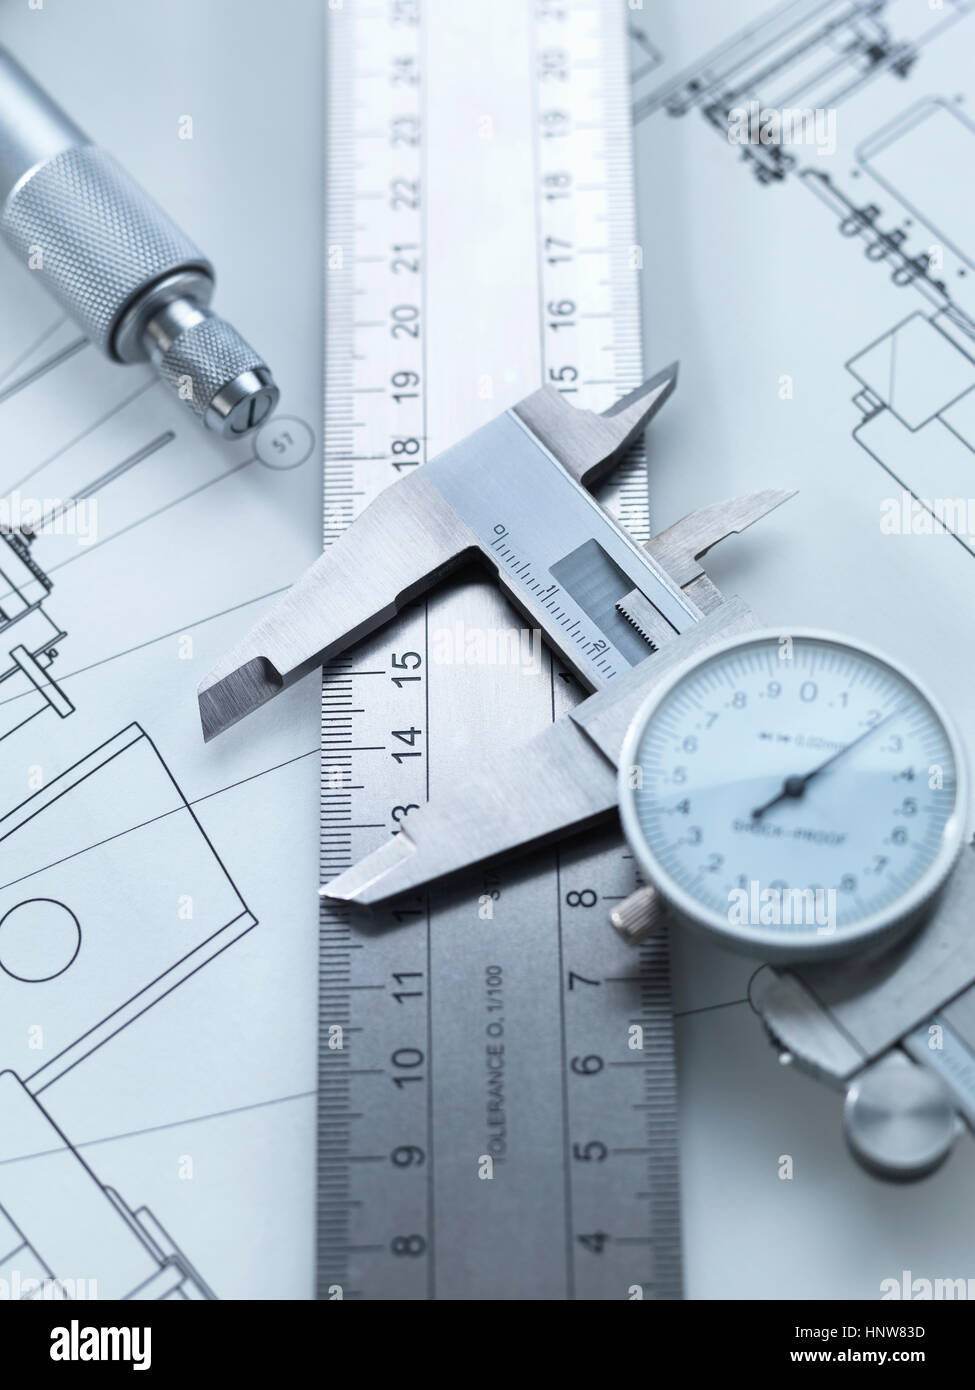 Dial calipers sitting on steel rule with engineering drawings - Stock Image